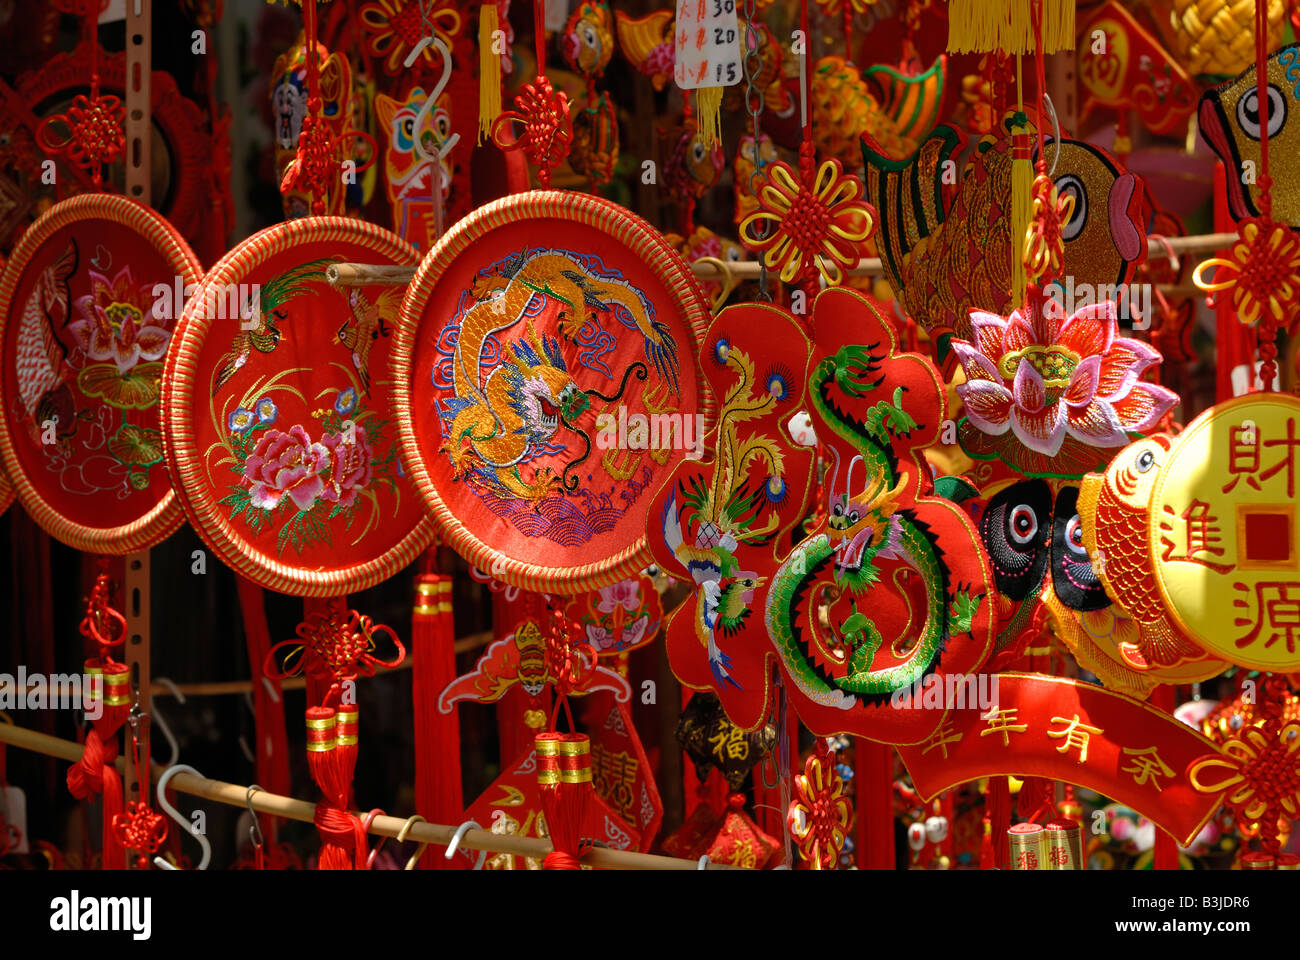 Chinese Decorations For The Mid Autumn Festival Stock